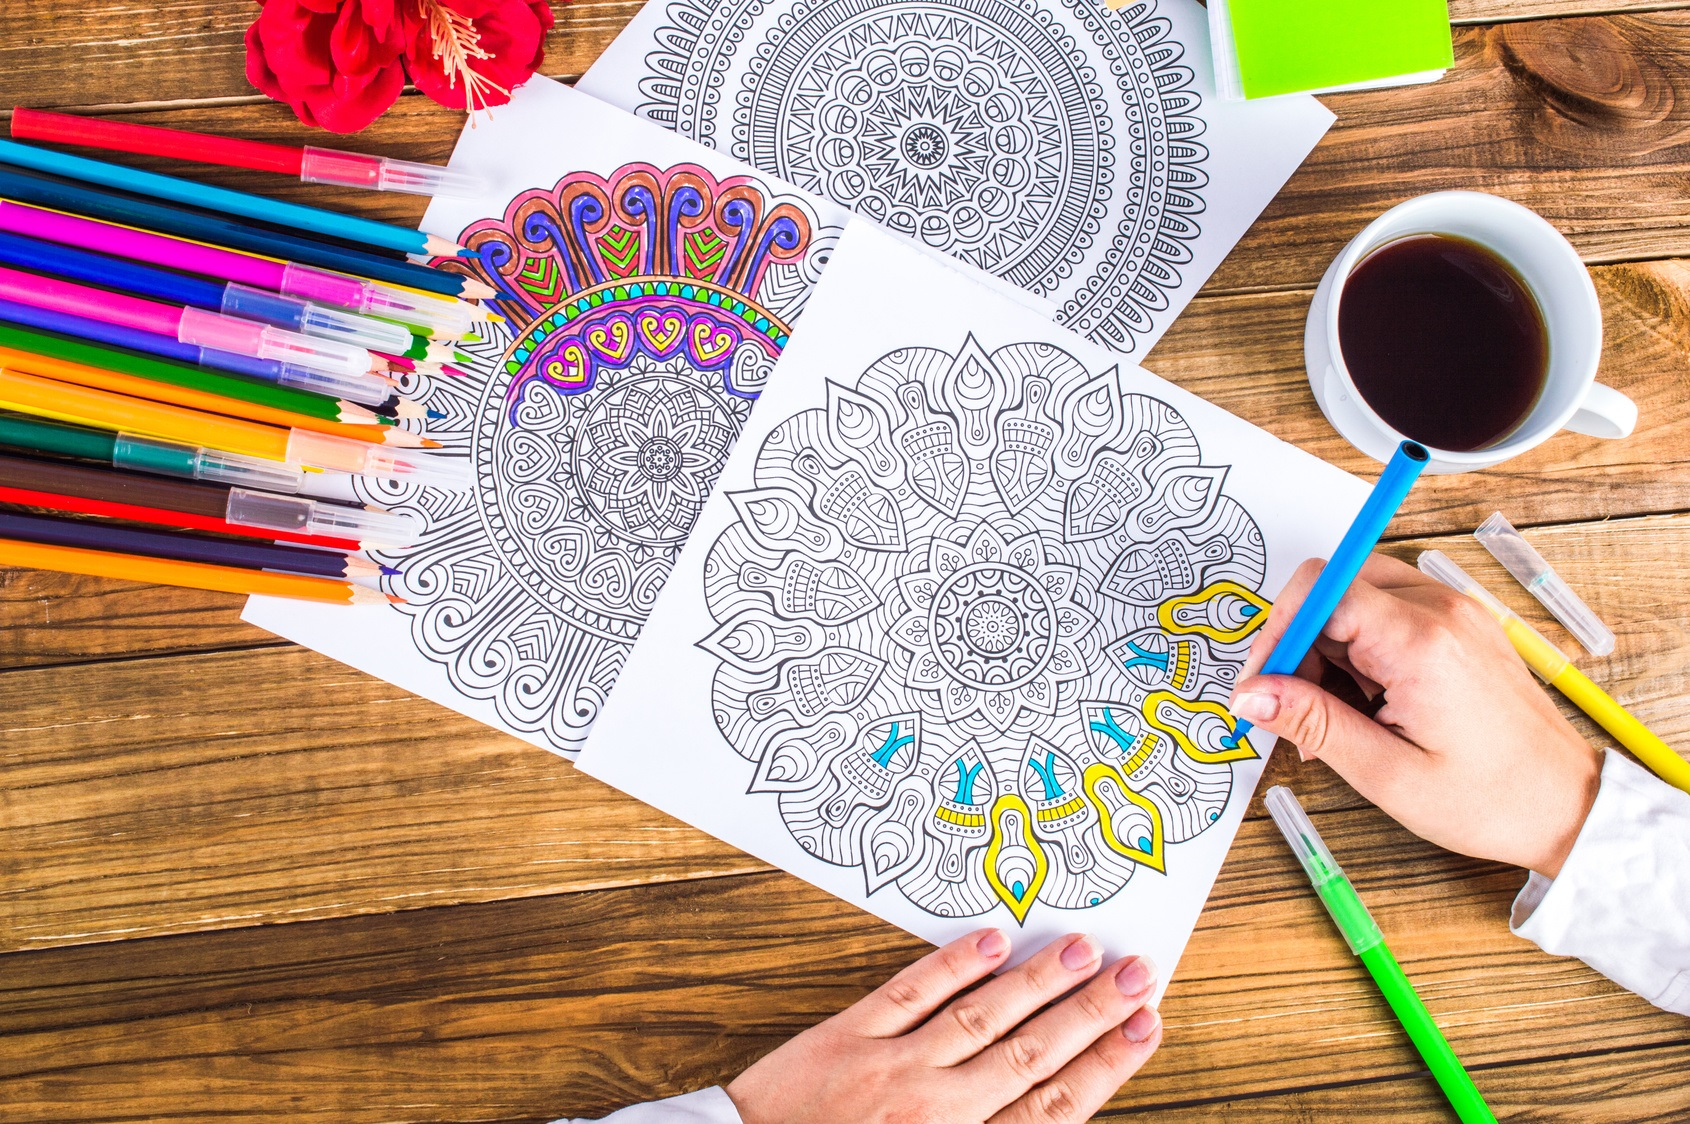 Relax by coloring